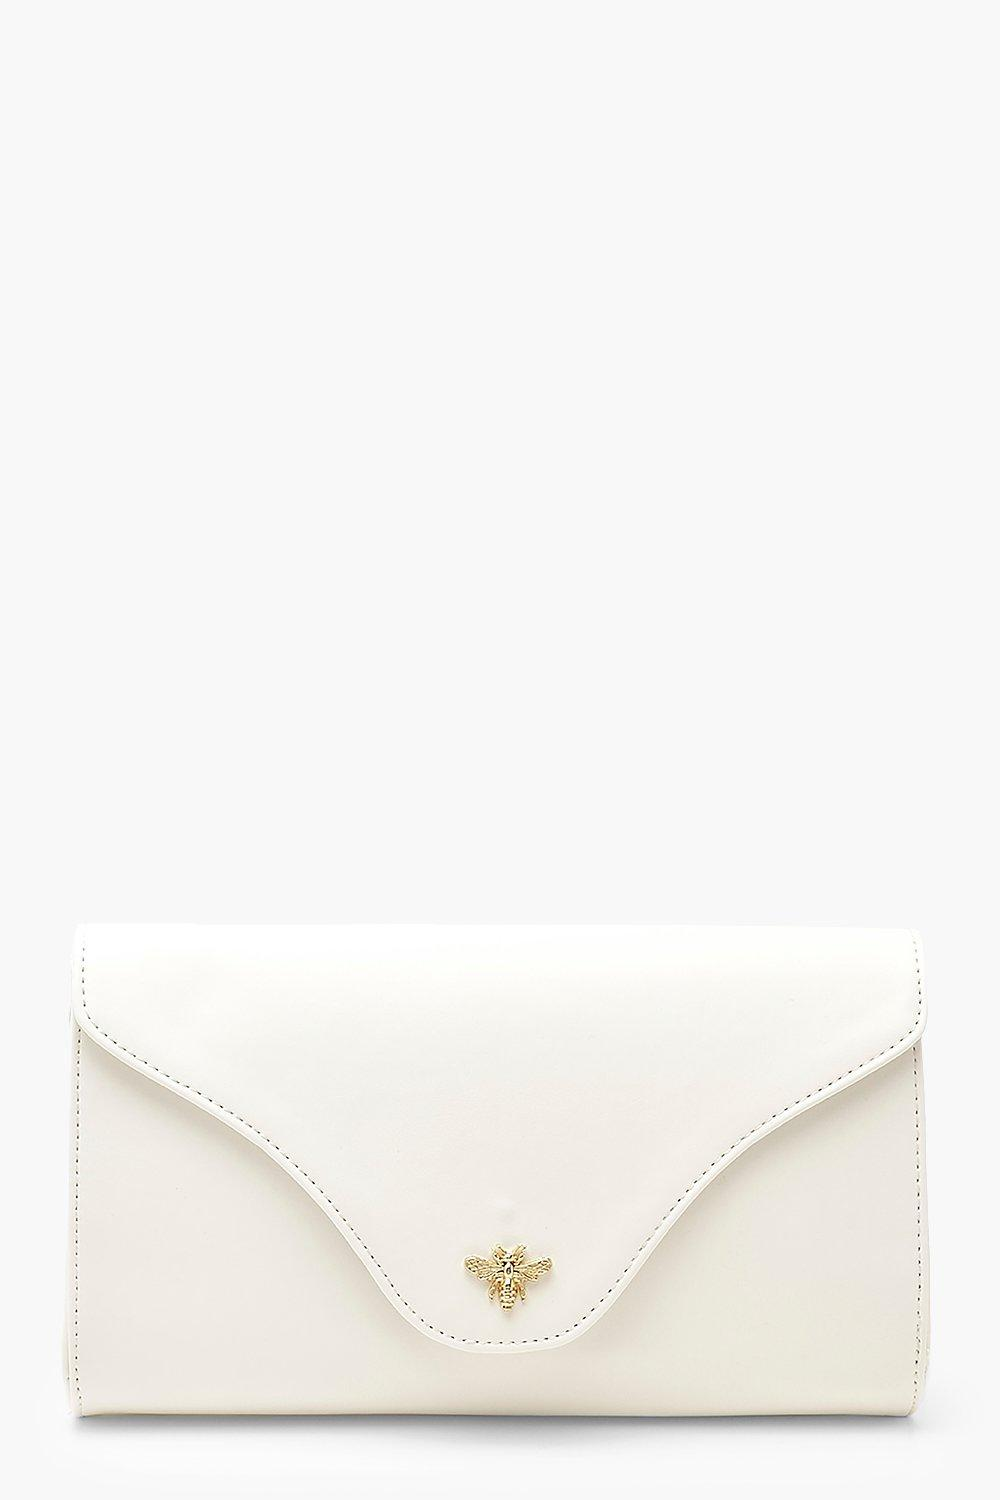 boohoo Womens Smooth Pu Metal Bee Clutch Bag With Chain - White - One Size, White